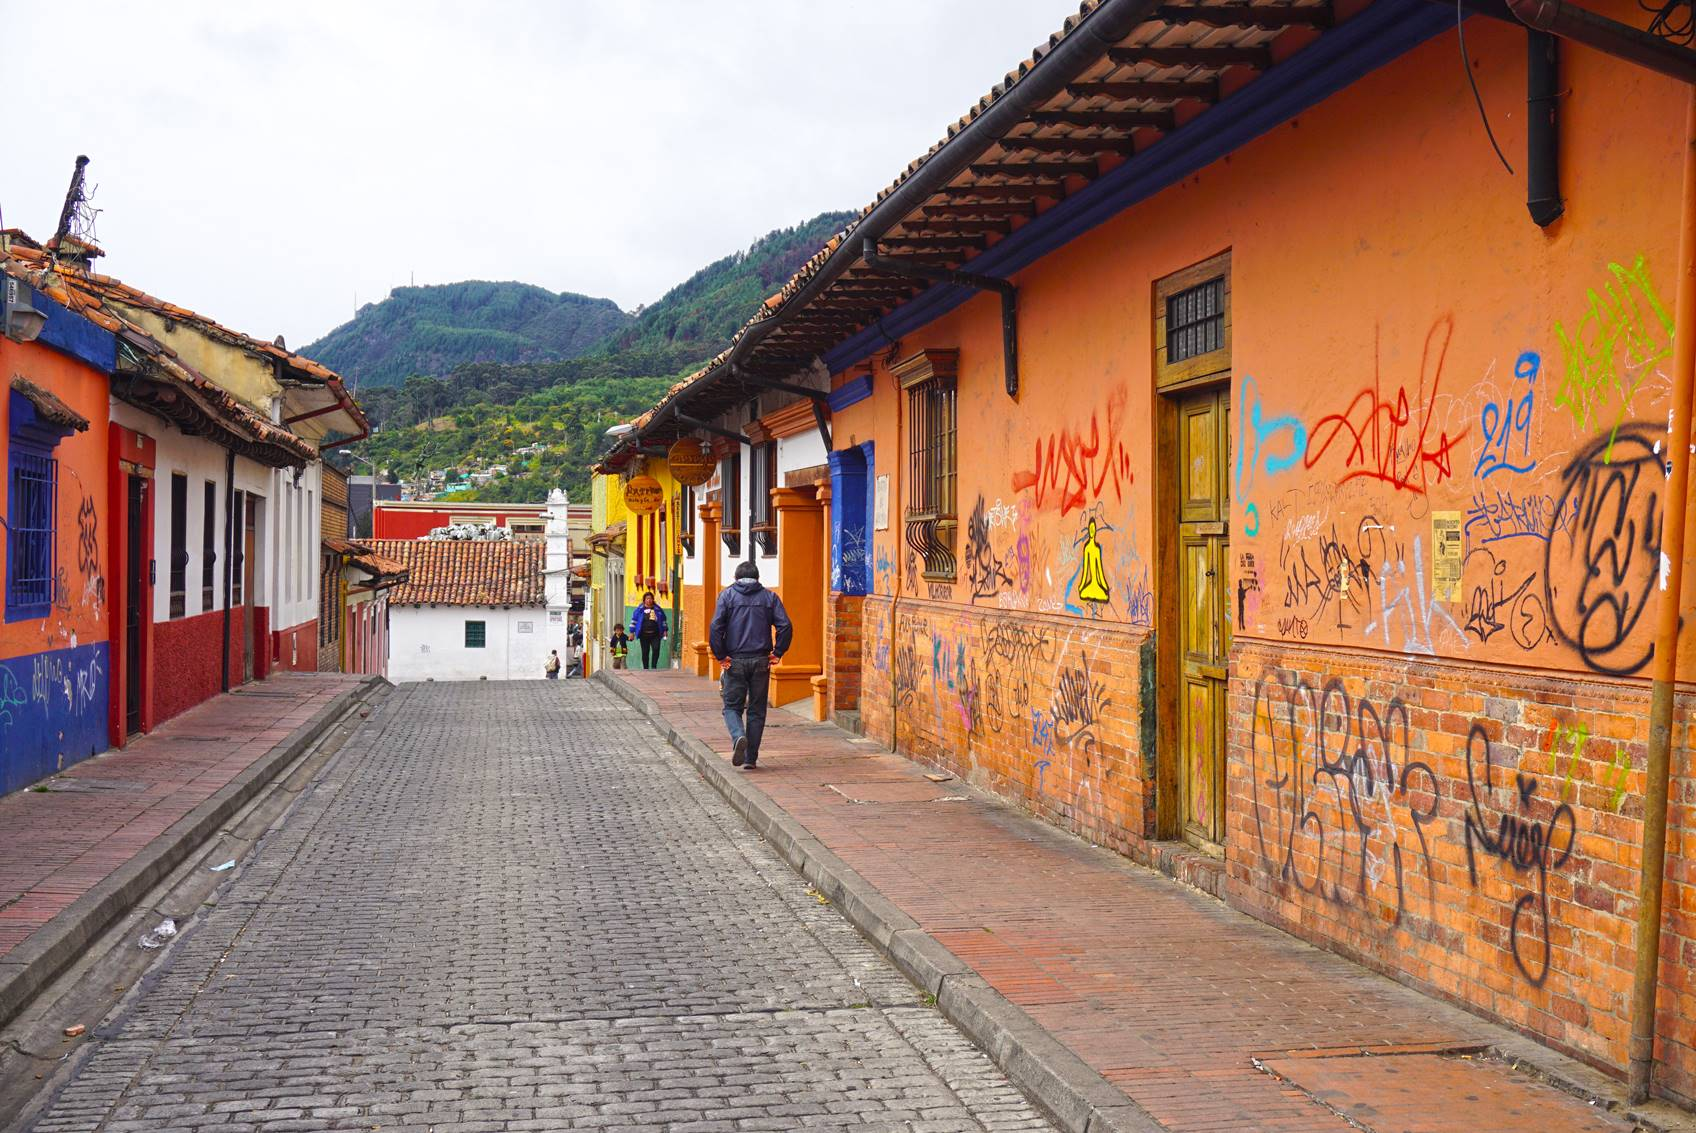 Streets of Candelaria Bogota, Colombia